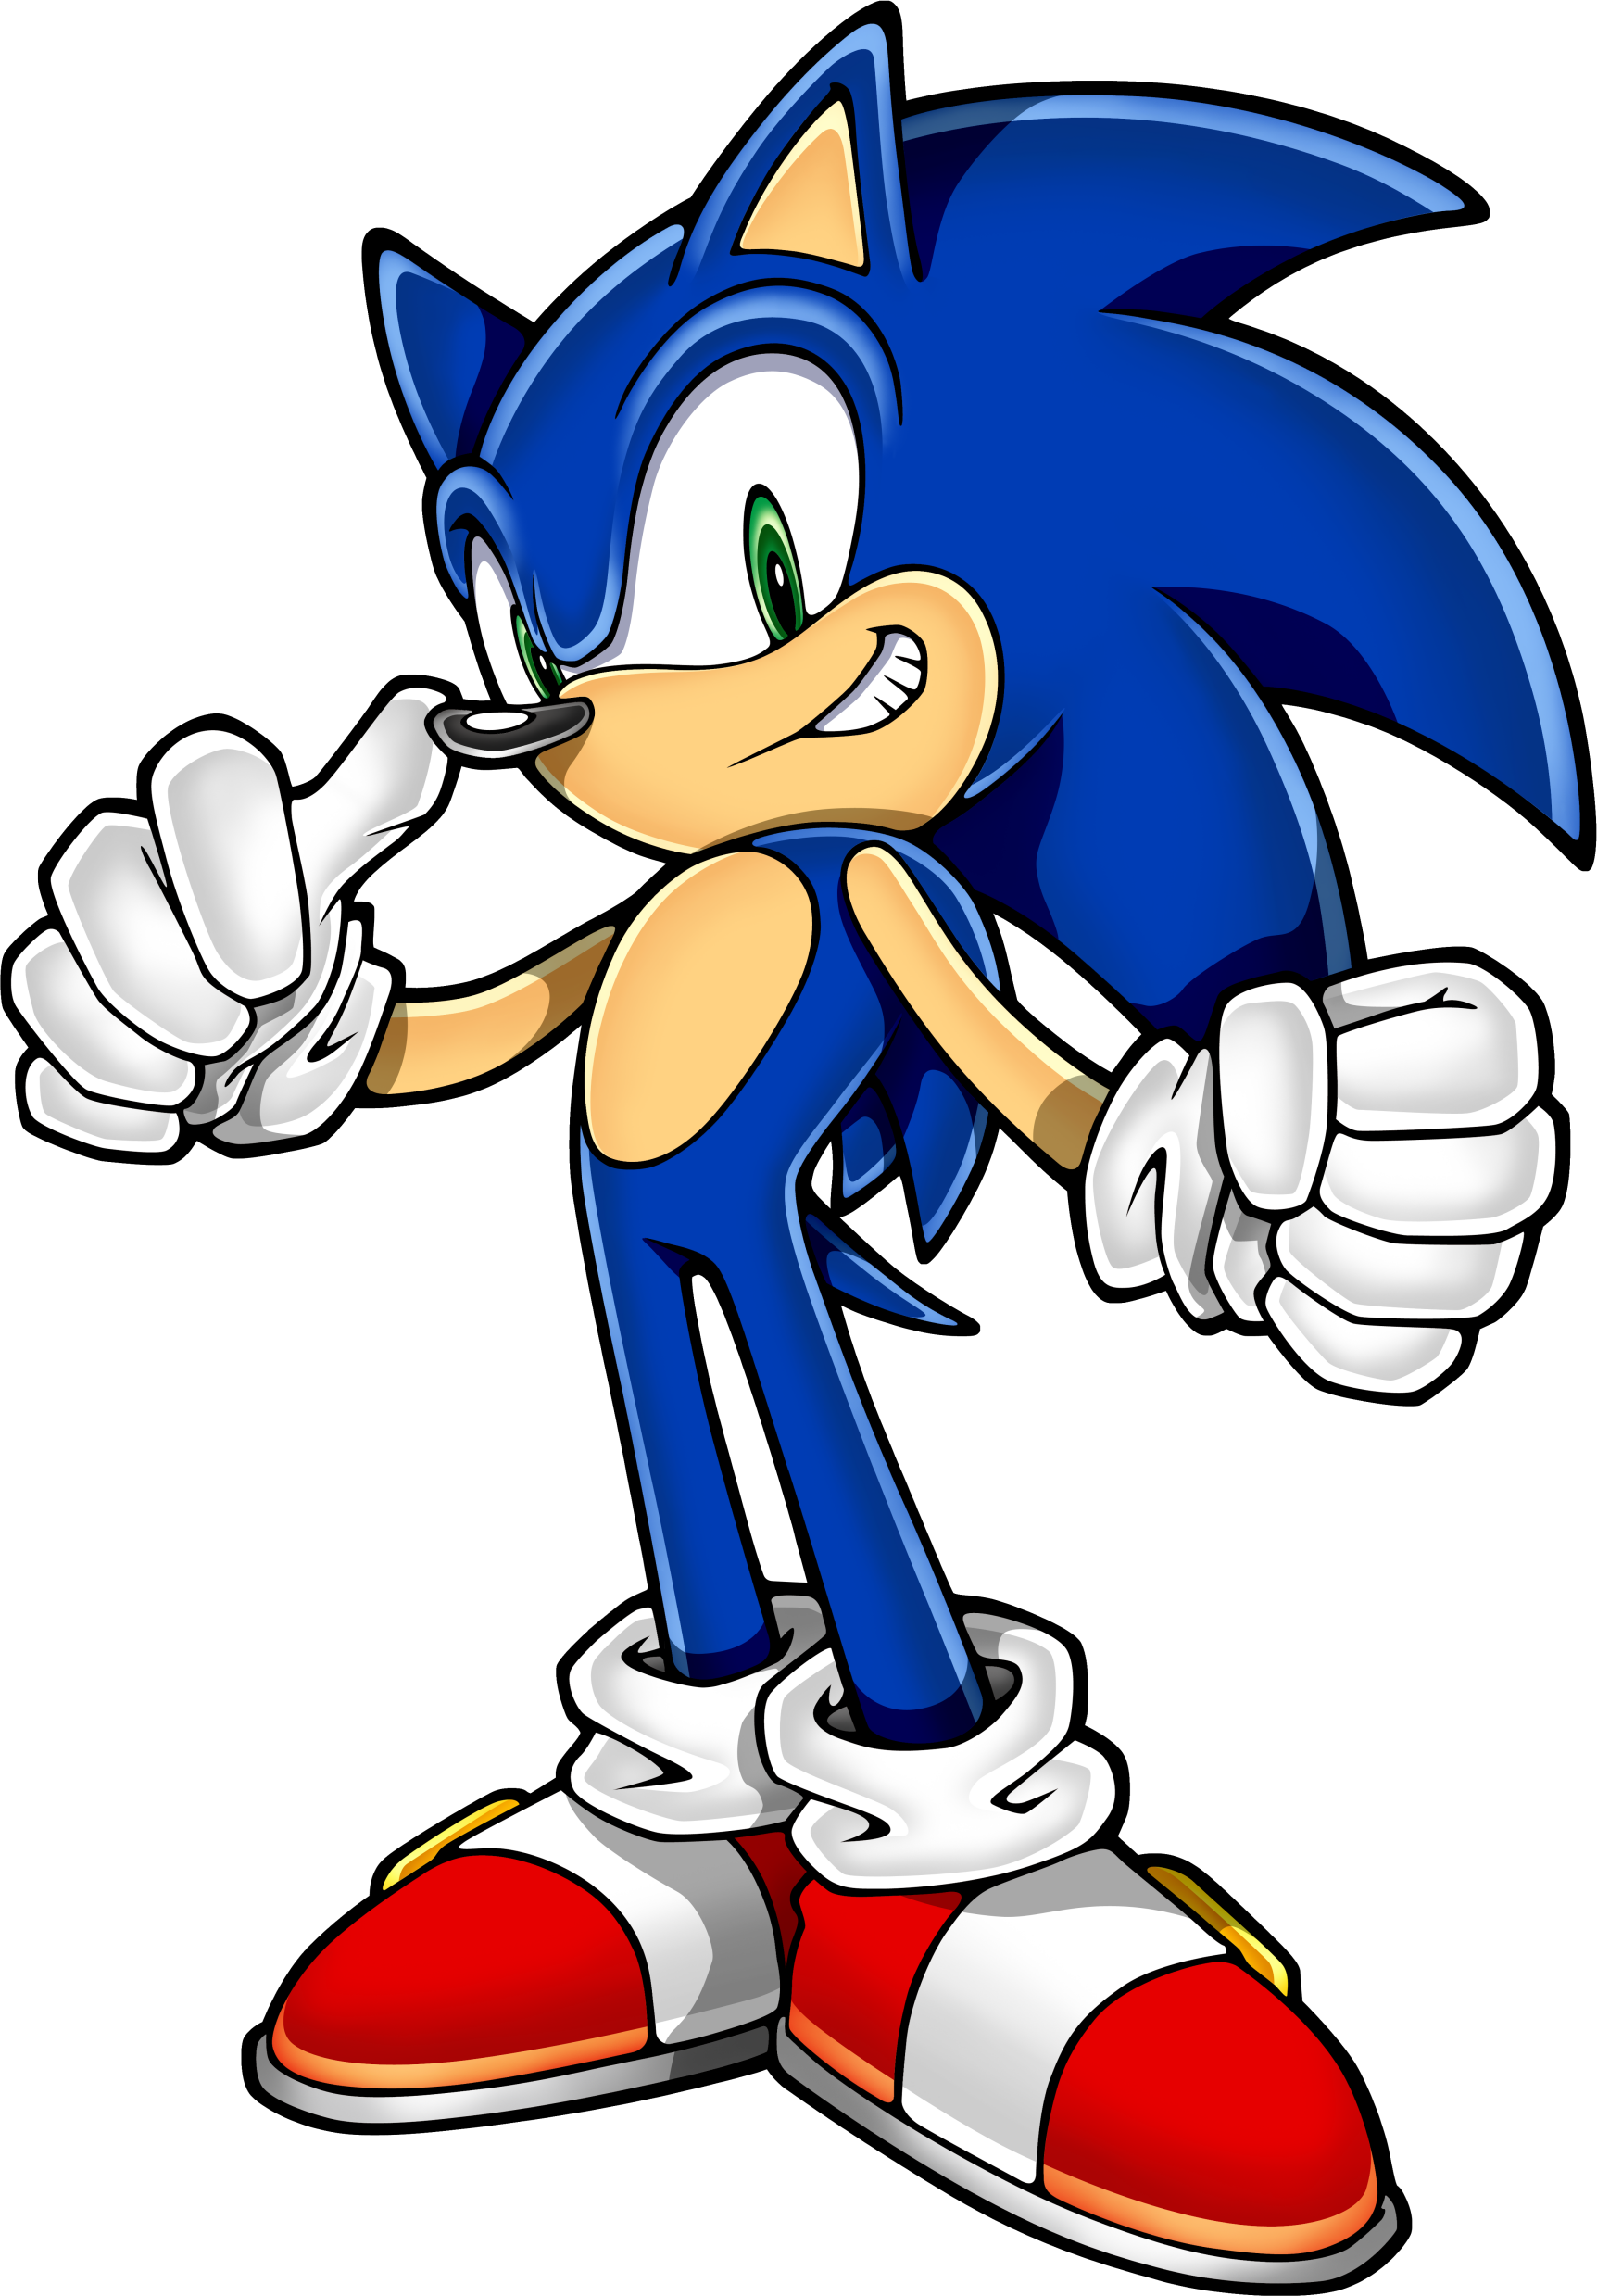 human sonic wiki human fandom powered by wikia. Black Bedroom Furniture Sets. Home Design Ideas